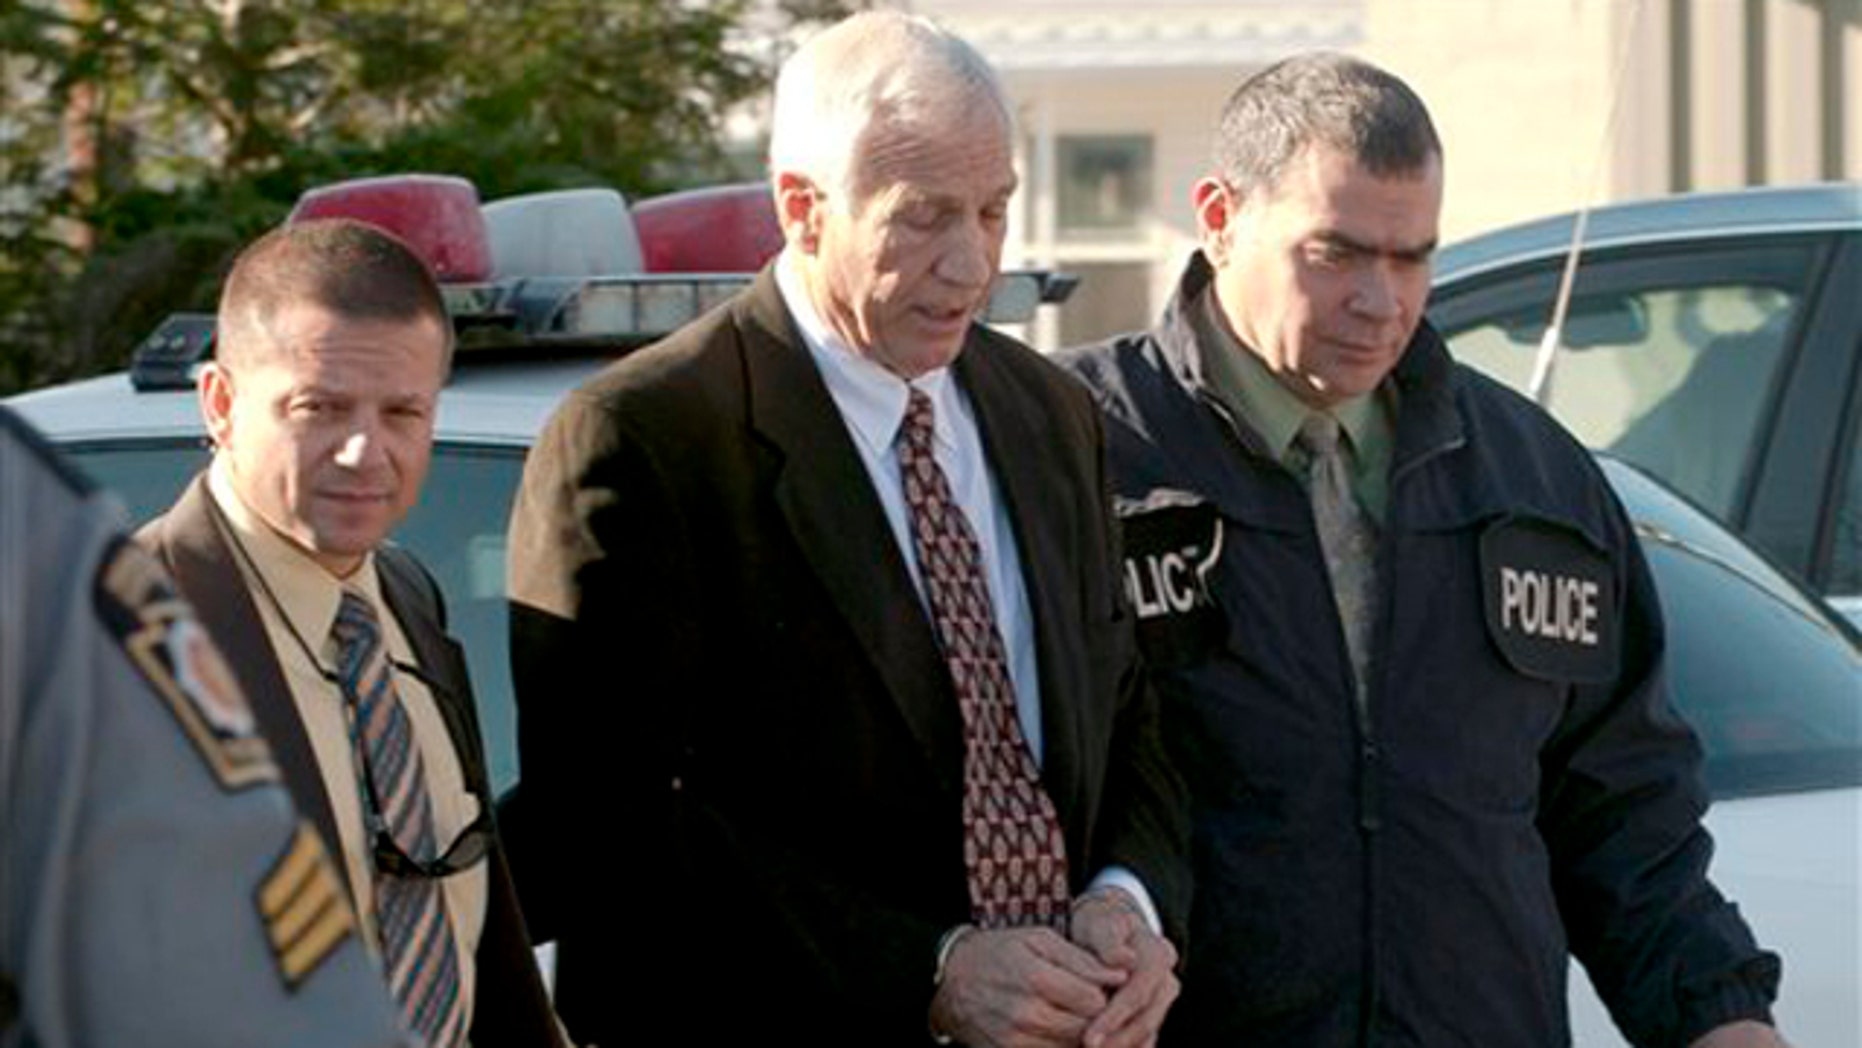 """Nov. 5: In this photo provided by the Pennsylvania Office of Attorney General, former Penn State football defensive coordinator Gerald """"Jerry"""" Sandusky, is escorted in handcuffs to a waiting police car in Bellefonte, Pa."""